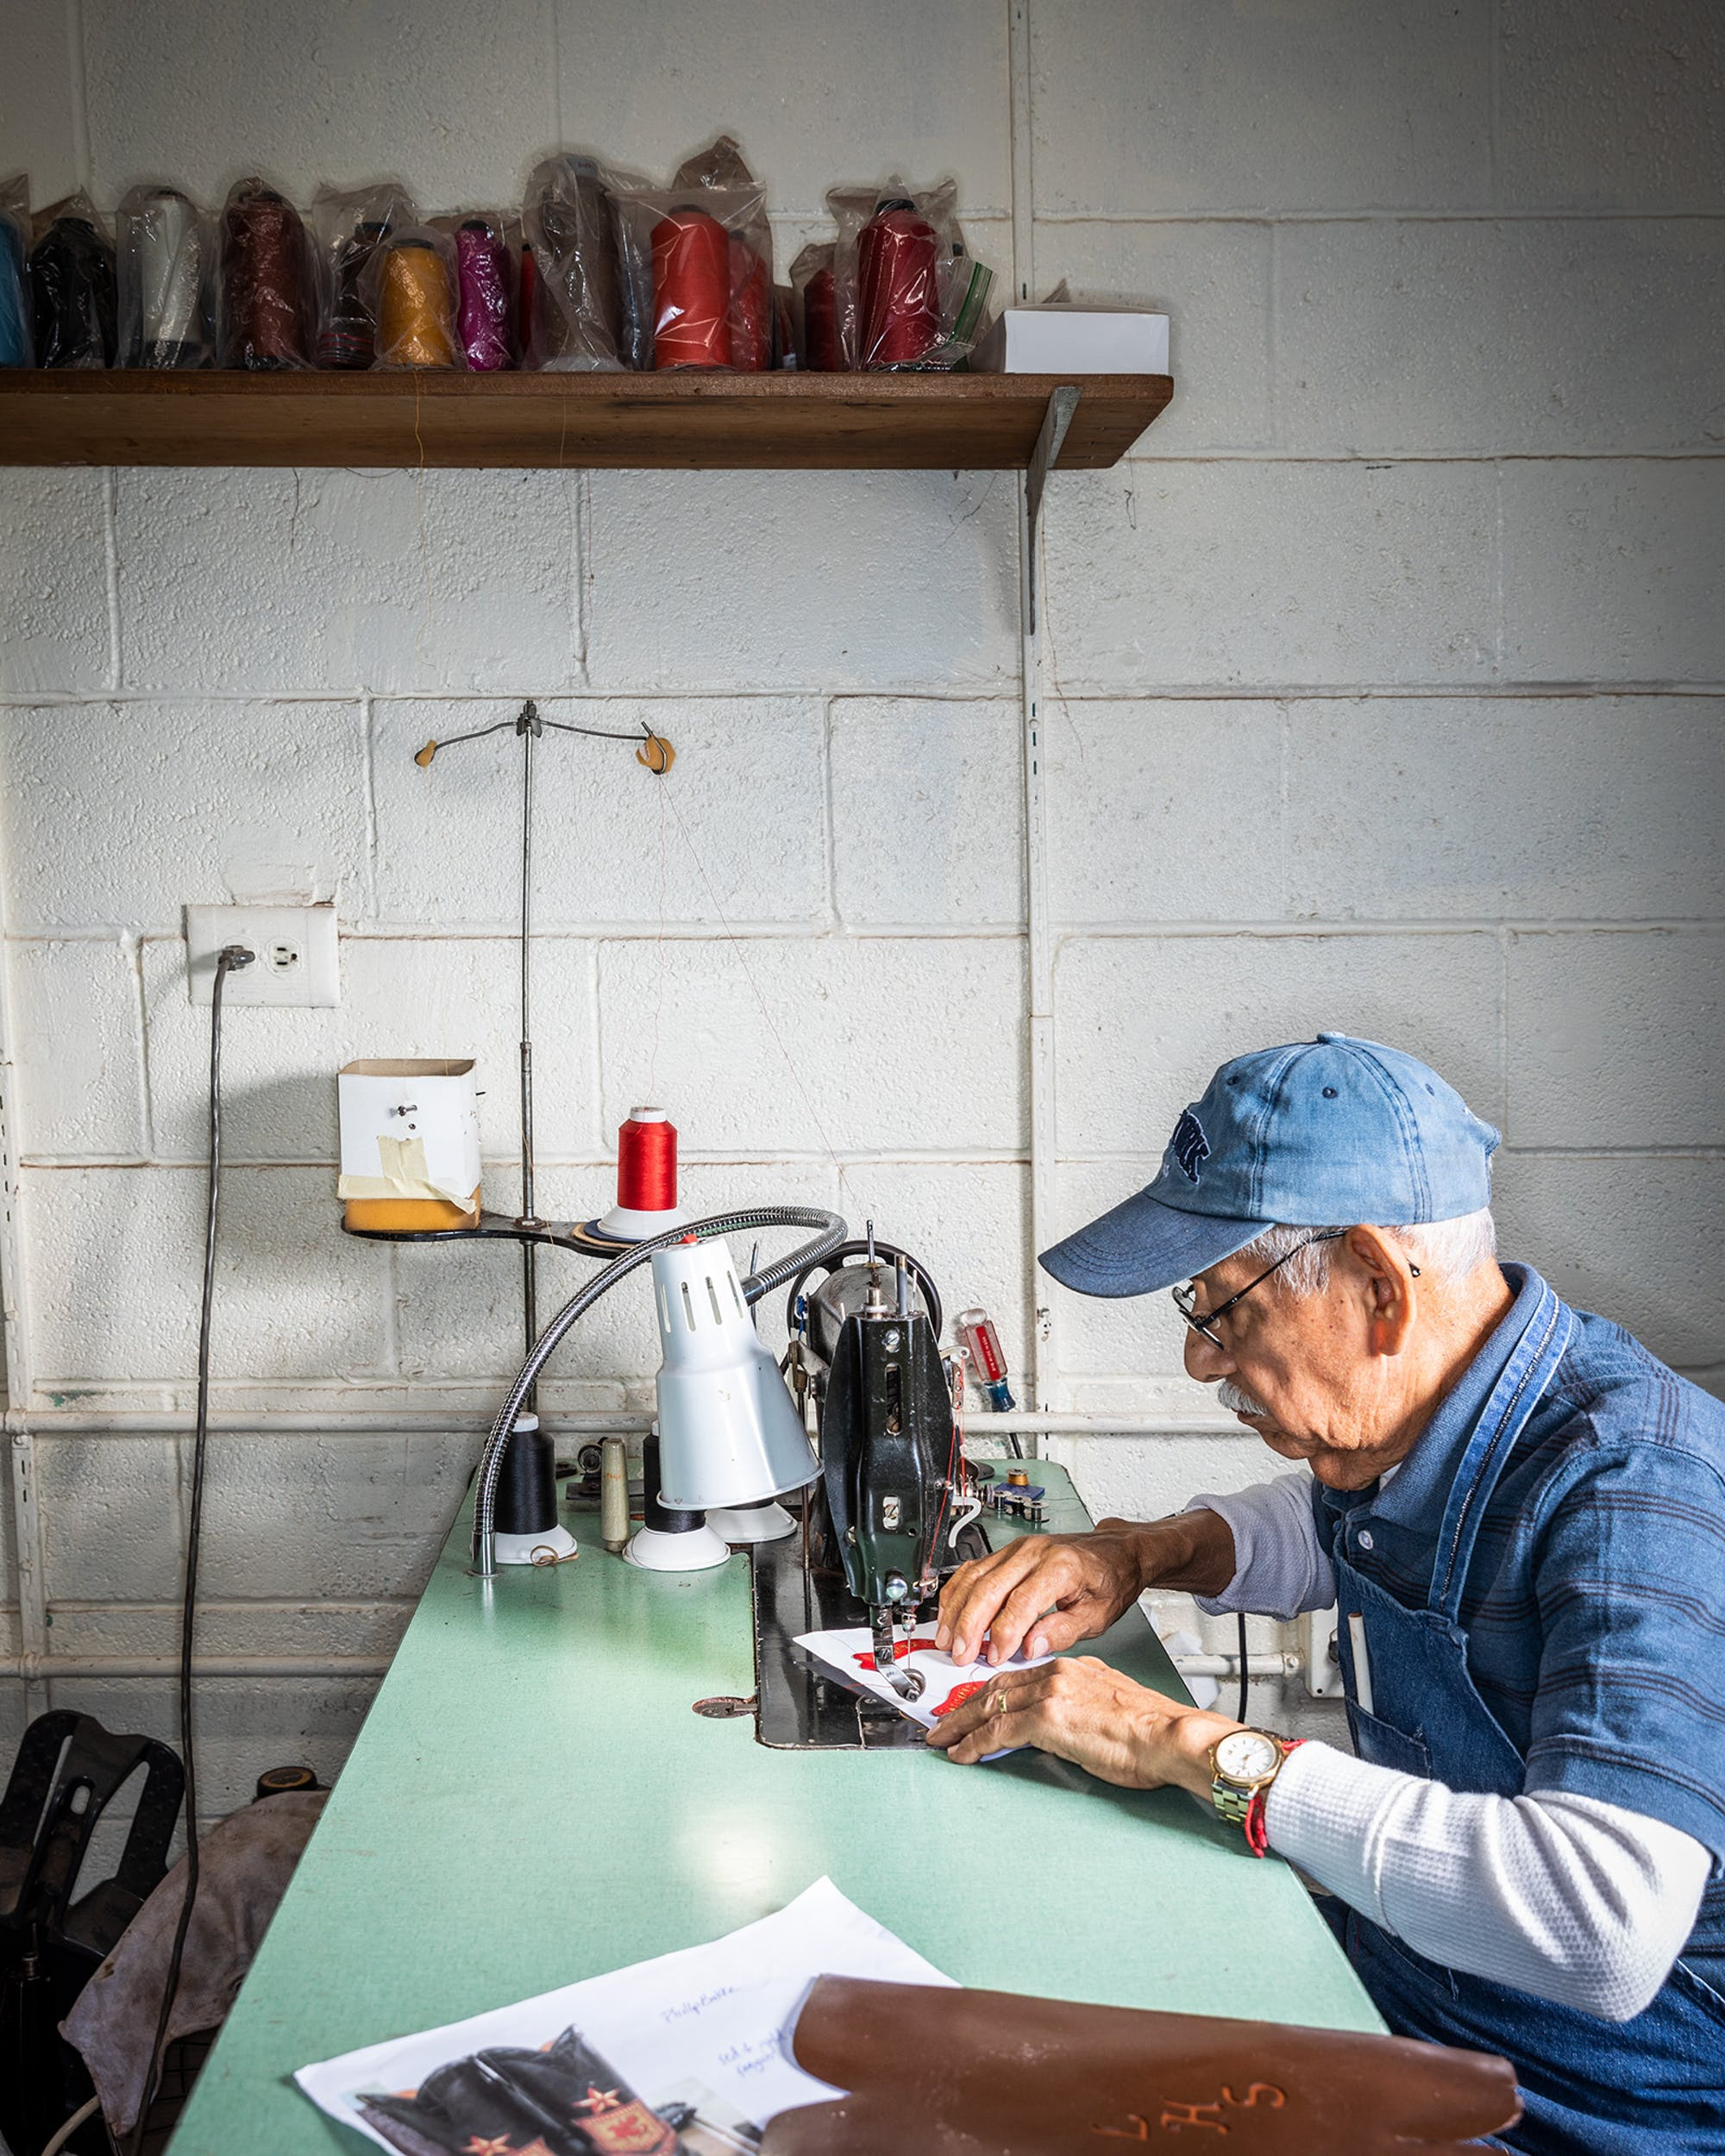 Juan O. Ortiz, who has worked at Little's for 33 years, mans a classic Singer 31-15 sewing machine, stitching inlays that will decorate a boot's shaft.